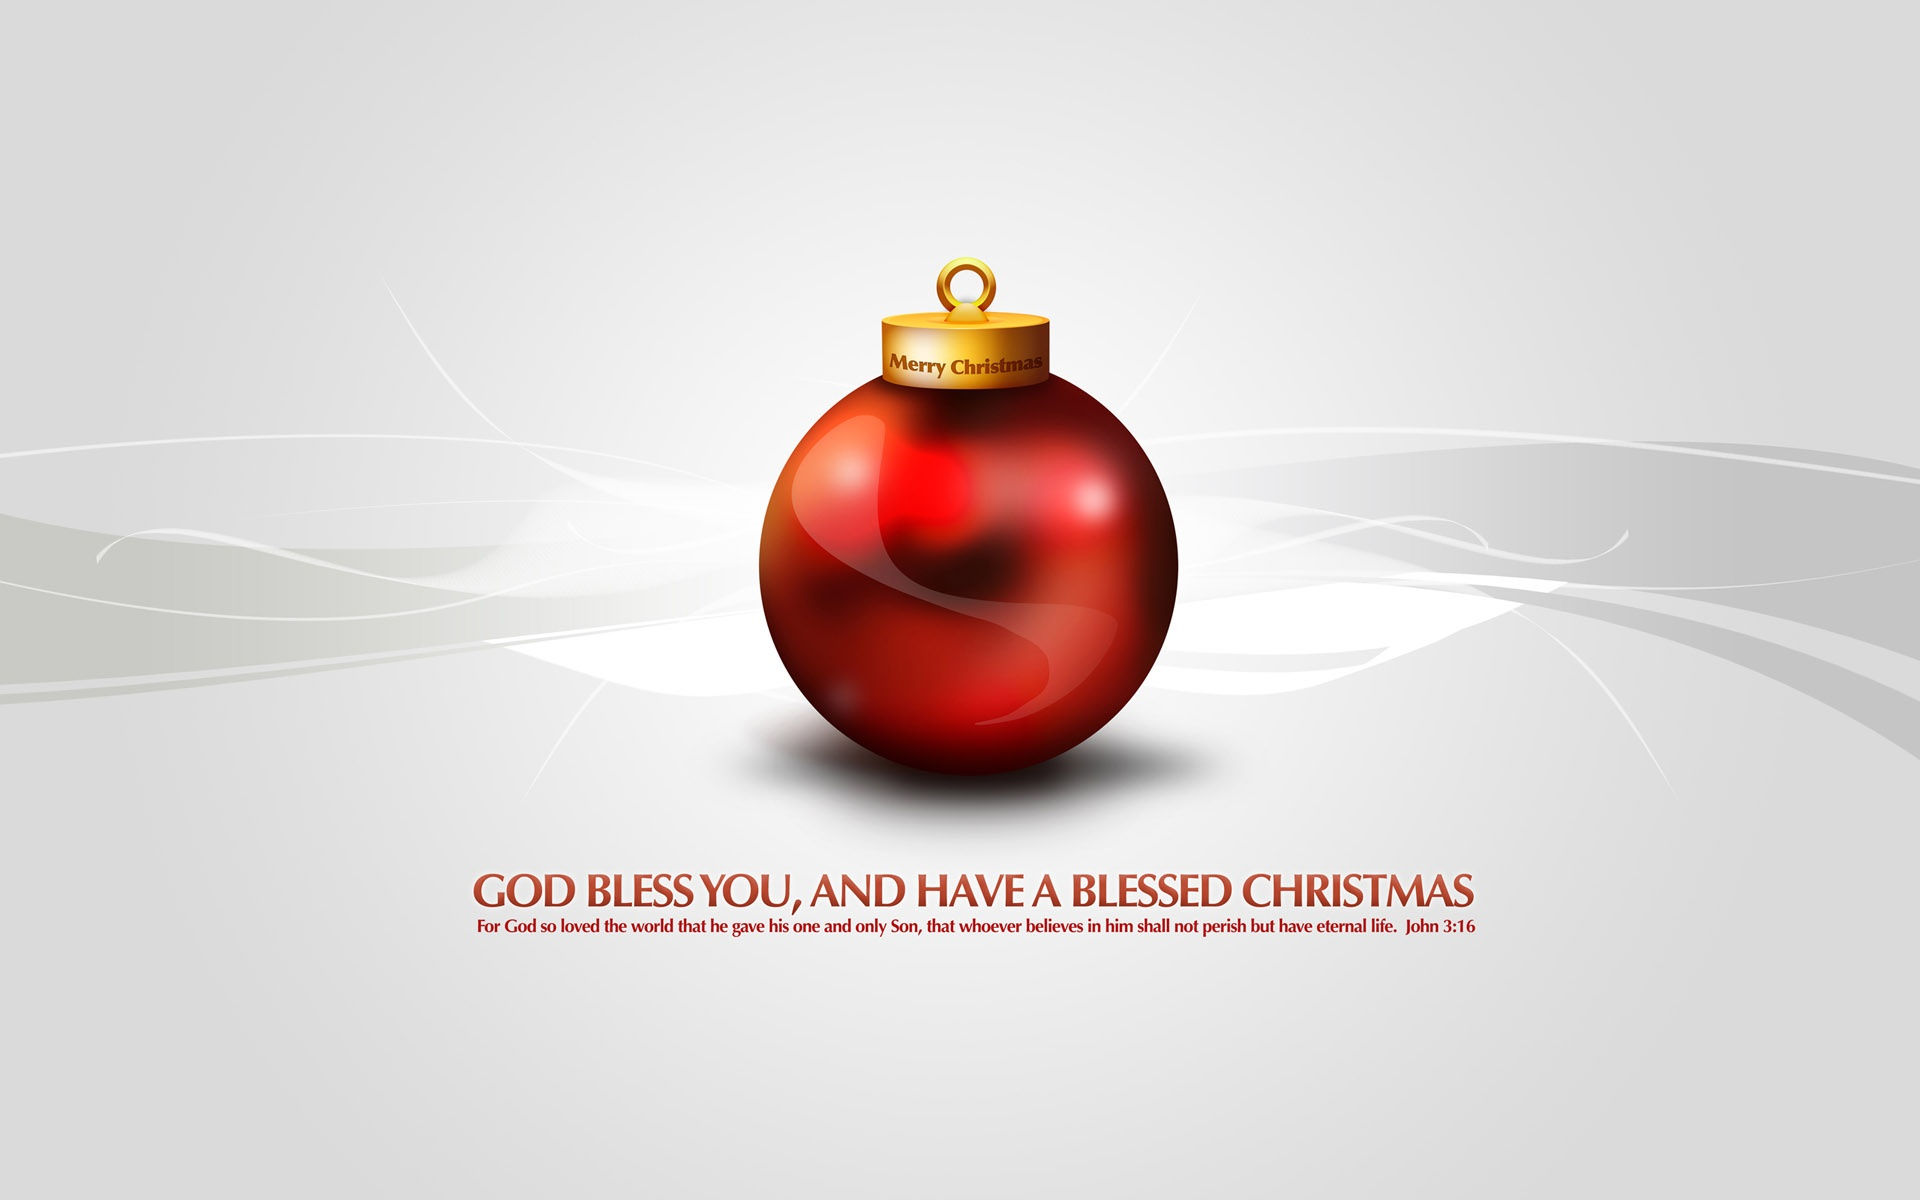 Merry Christmas God Bless You Wallpapers in jpg format for free ...